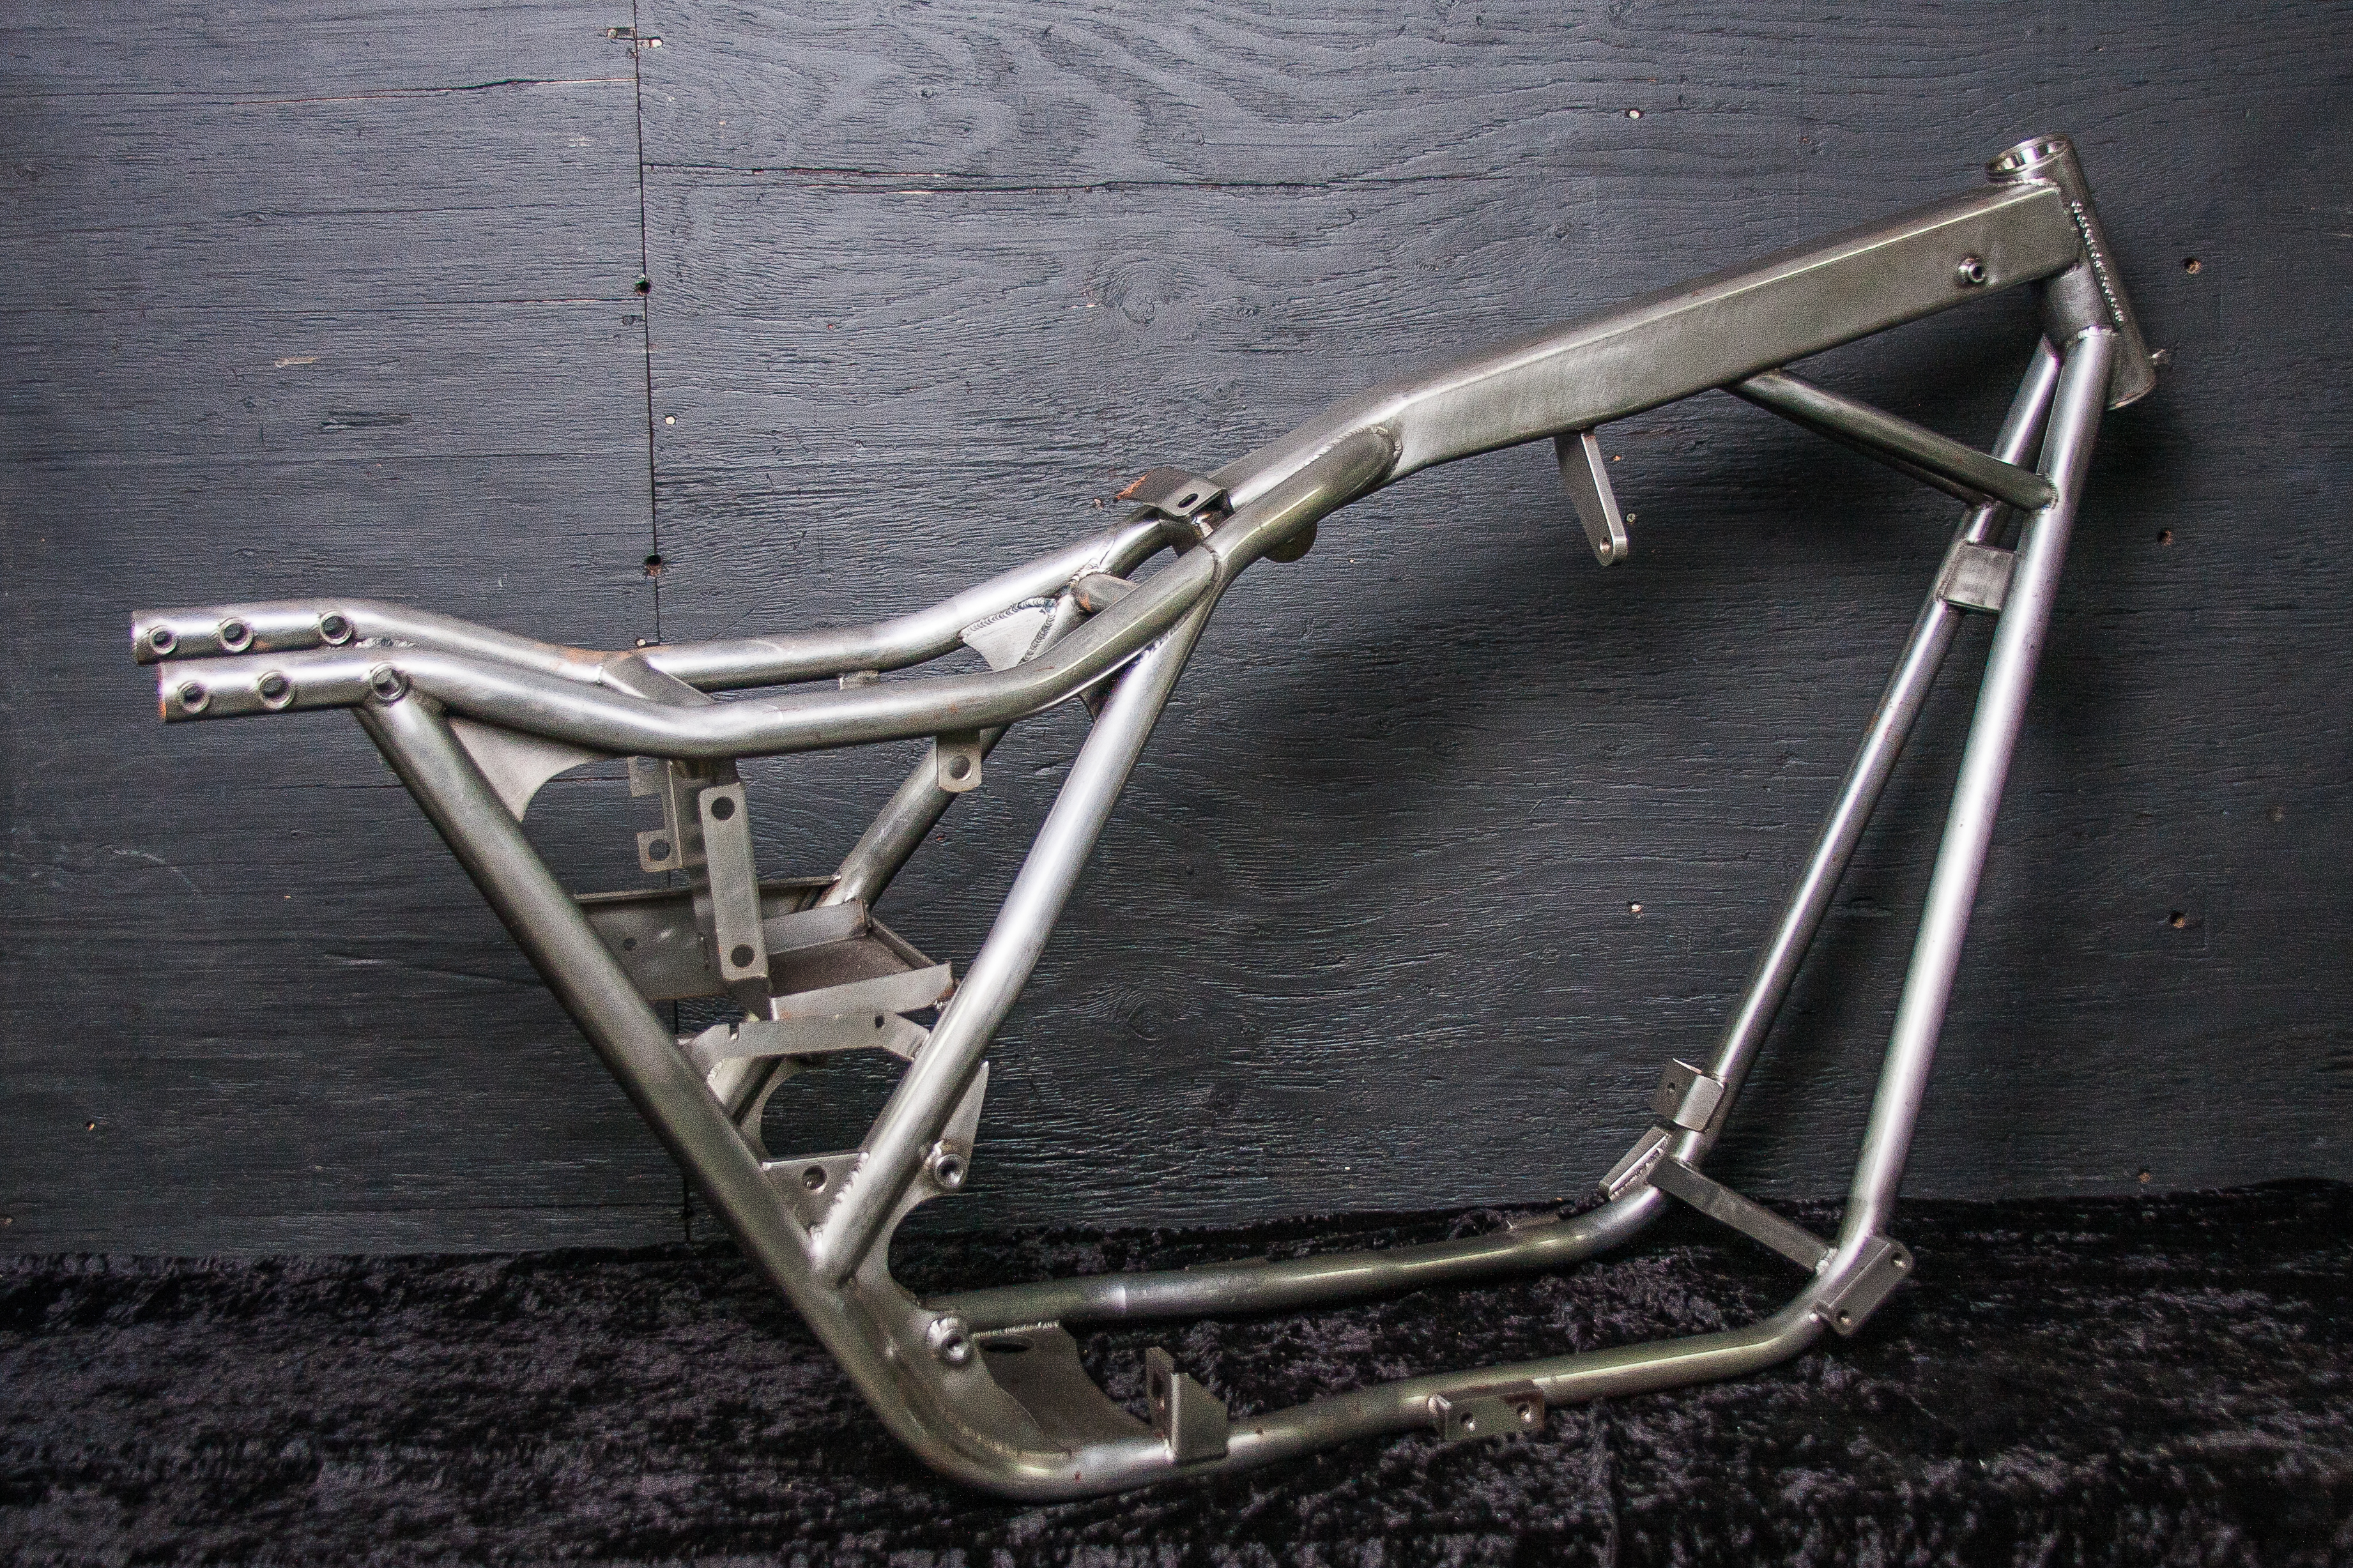 wide fxr motorcycle frame with swingarm - Motorcycle Frame